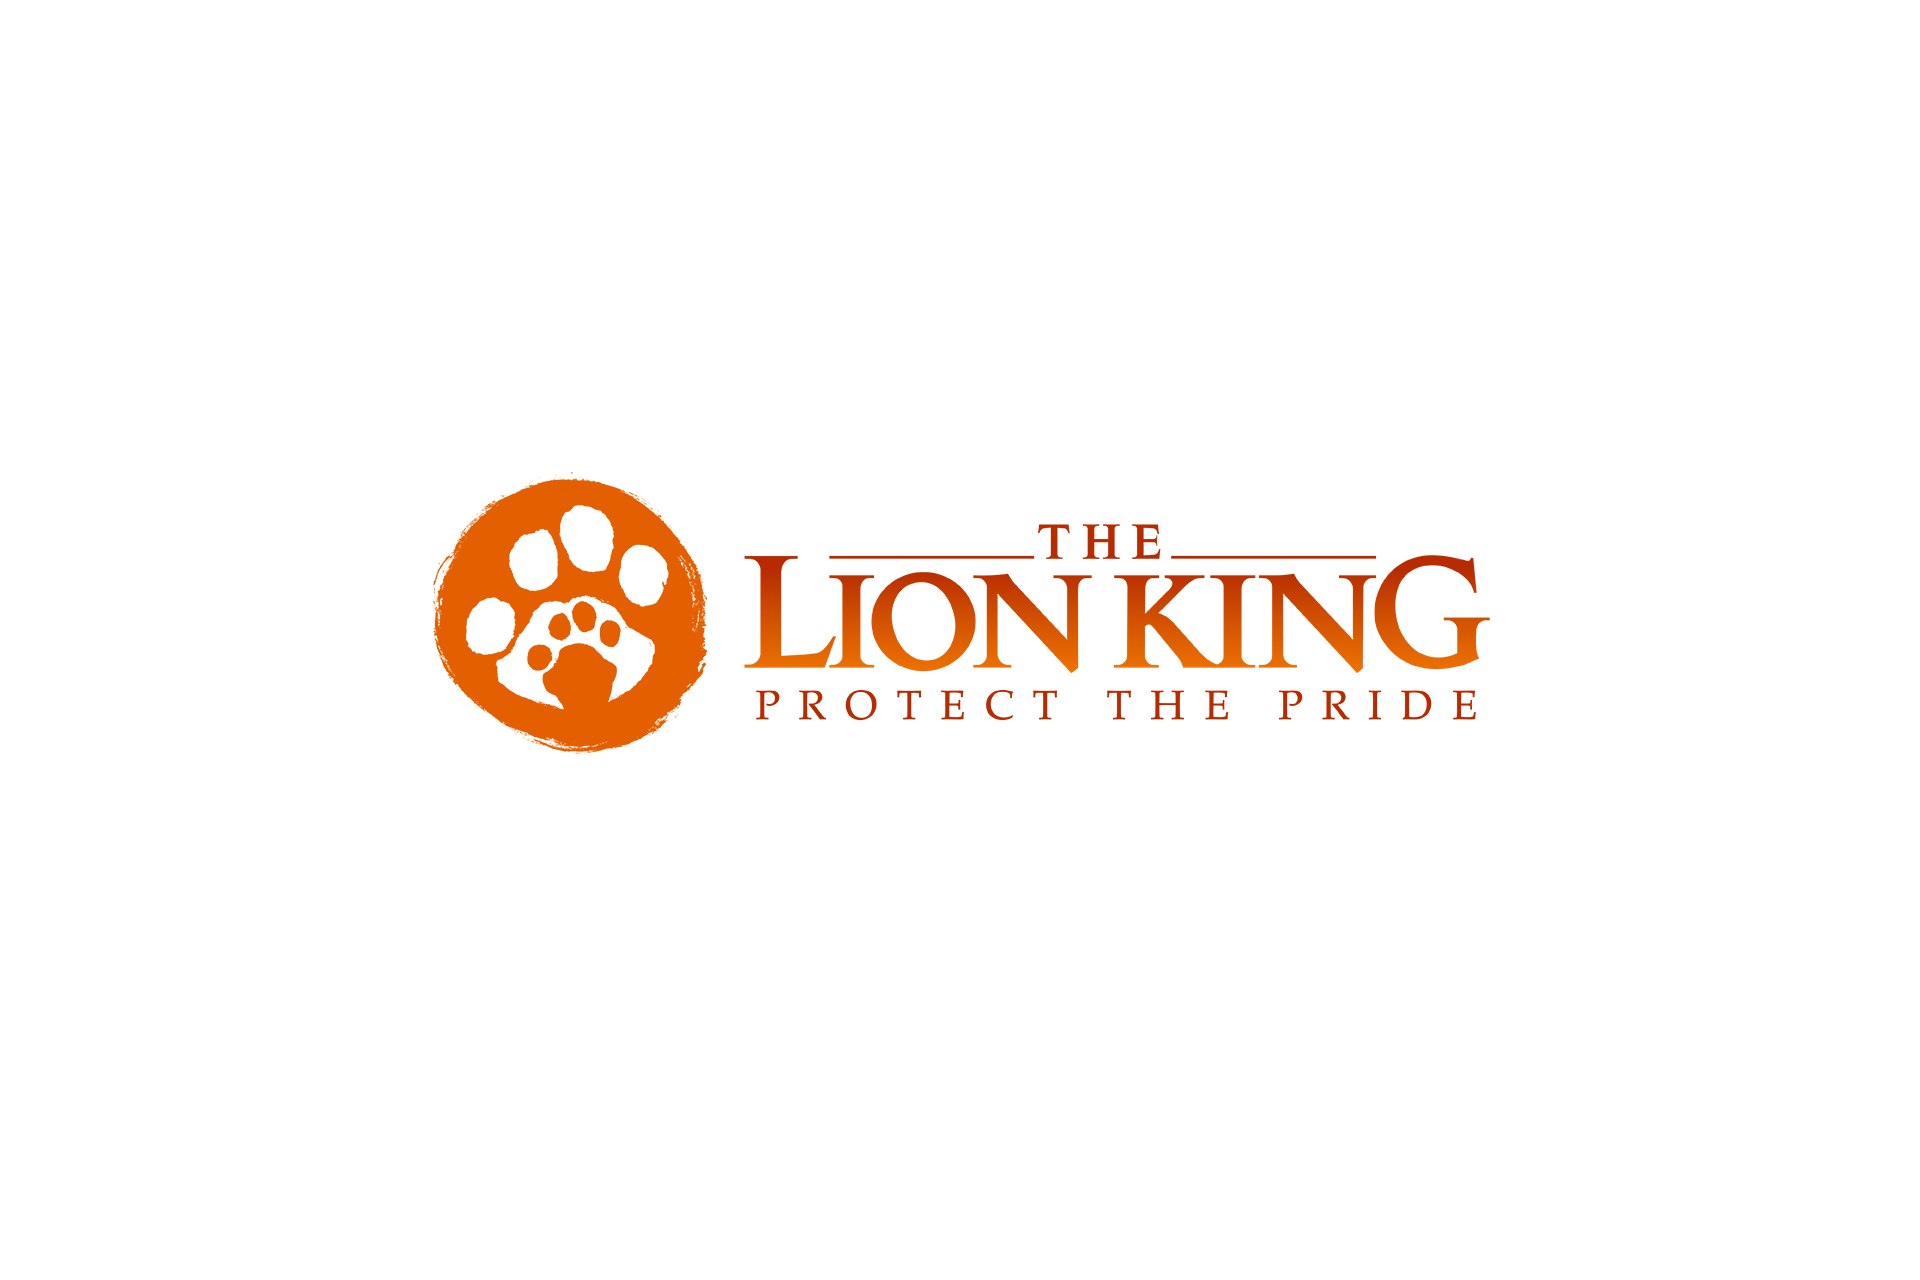 Disney Announces The Lion King Protect The Pride Campaign